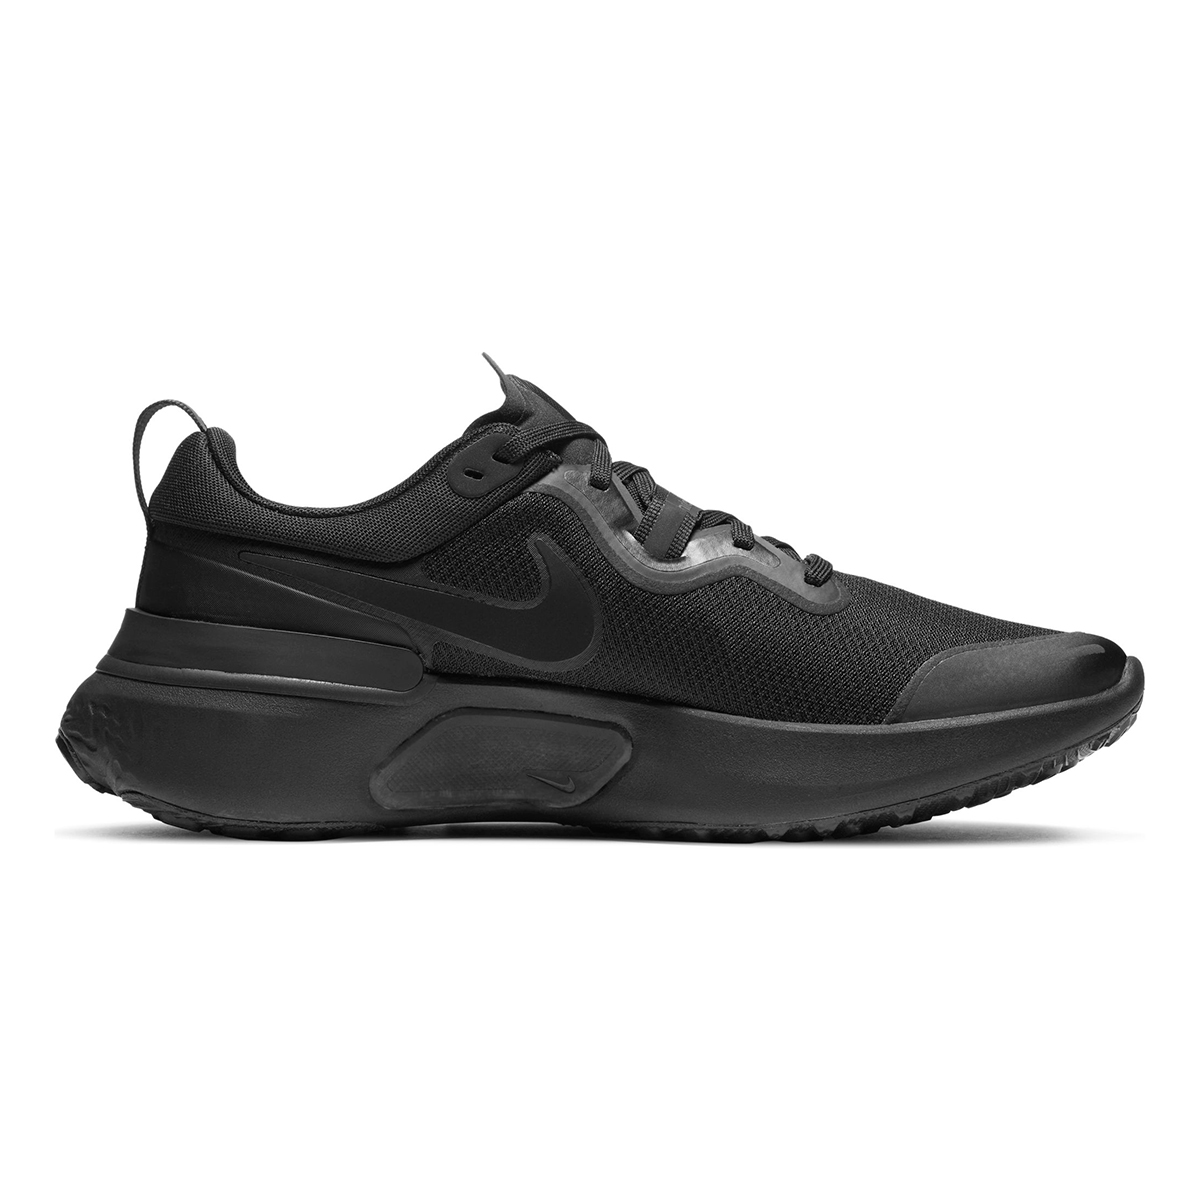 Men's Nike React Miler Running Shoe - Color: Black/Iron Grey/White/Black - Size: 6 - Width: Regular, Black/Iron Grey/White/Black, large, image 2